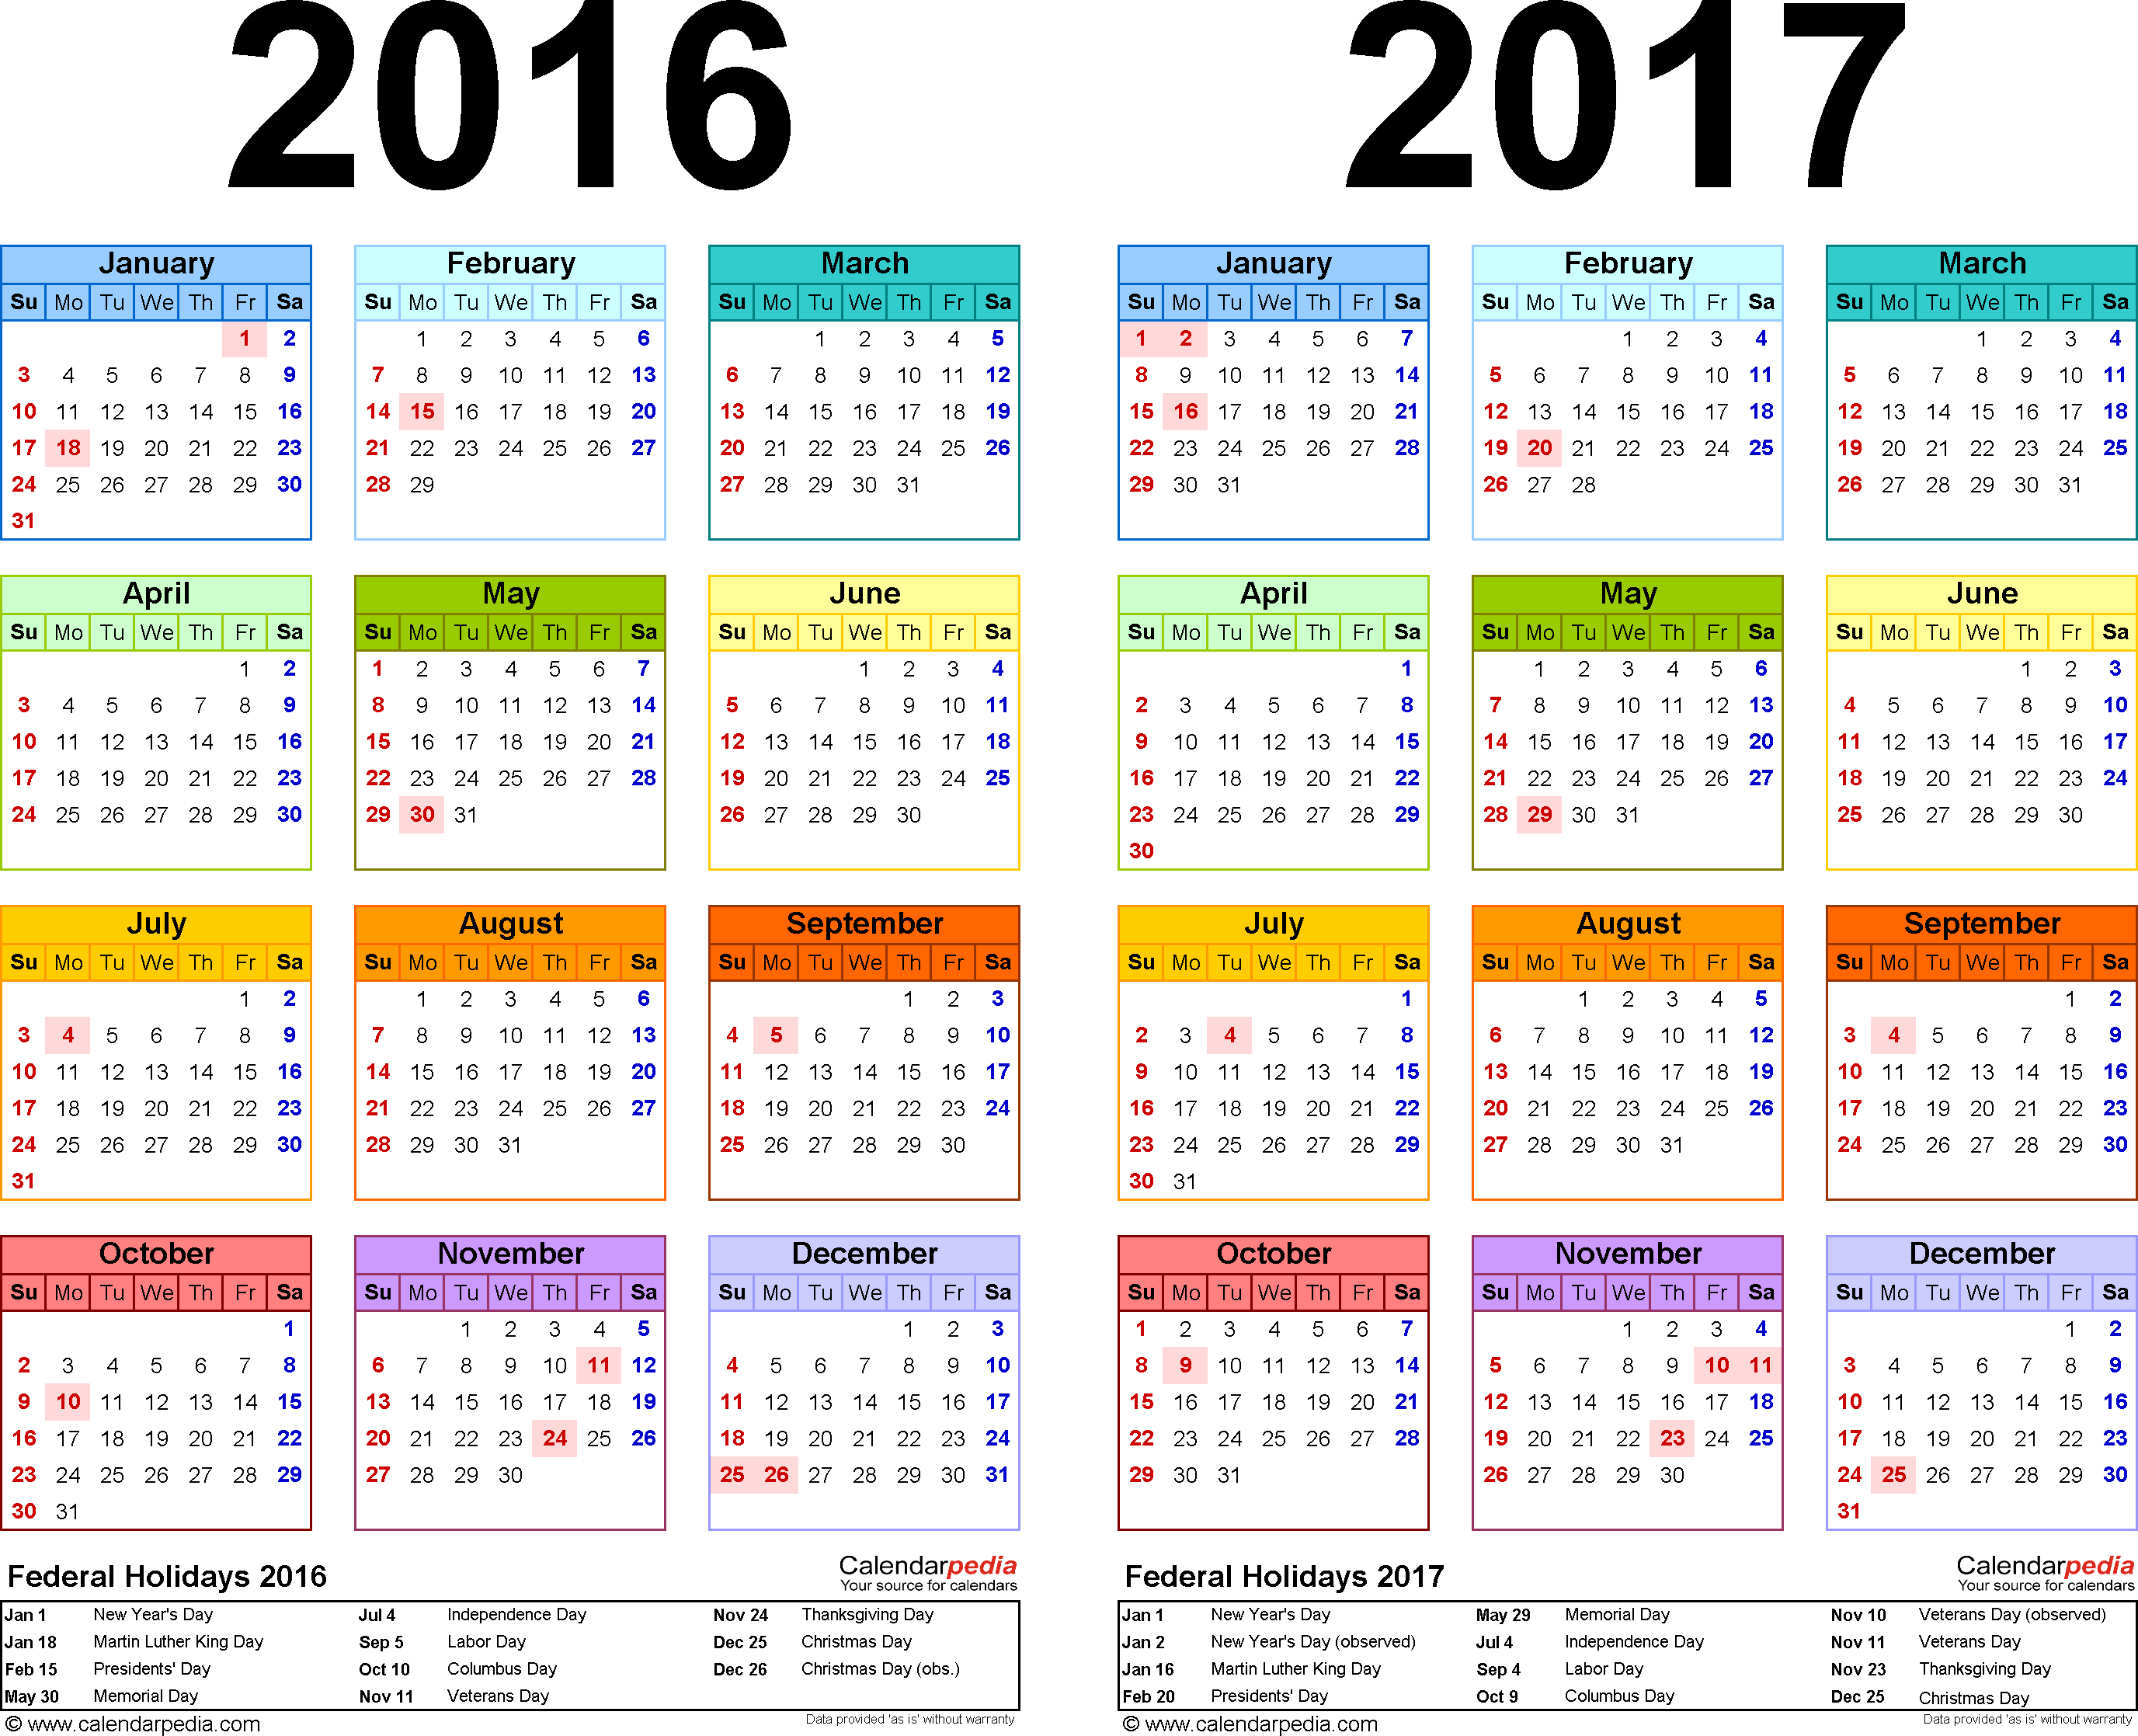 2016 2017 Calendar free printable two year PDF calendars